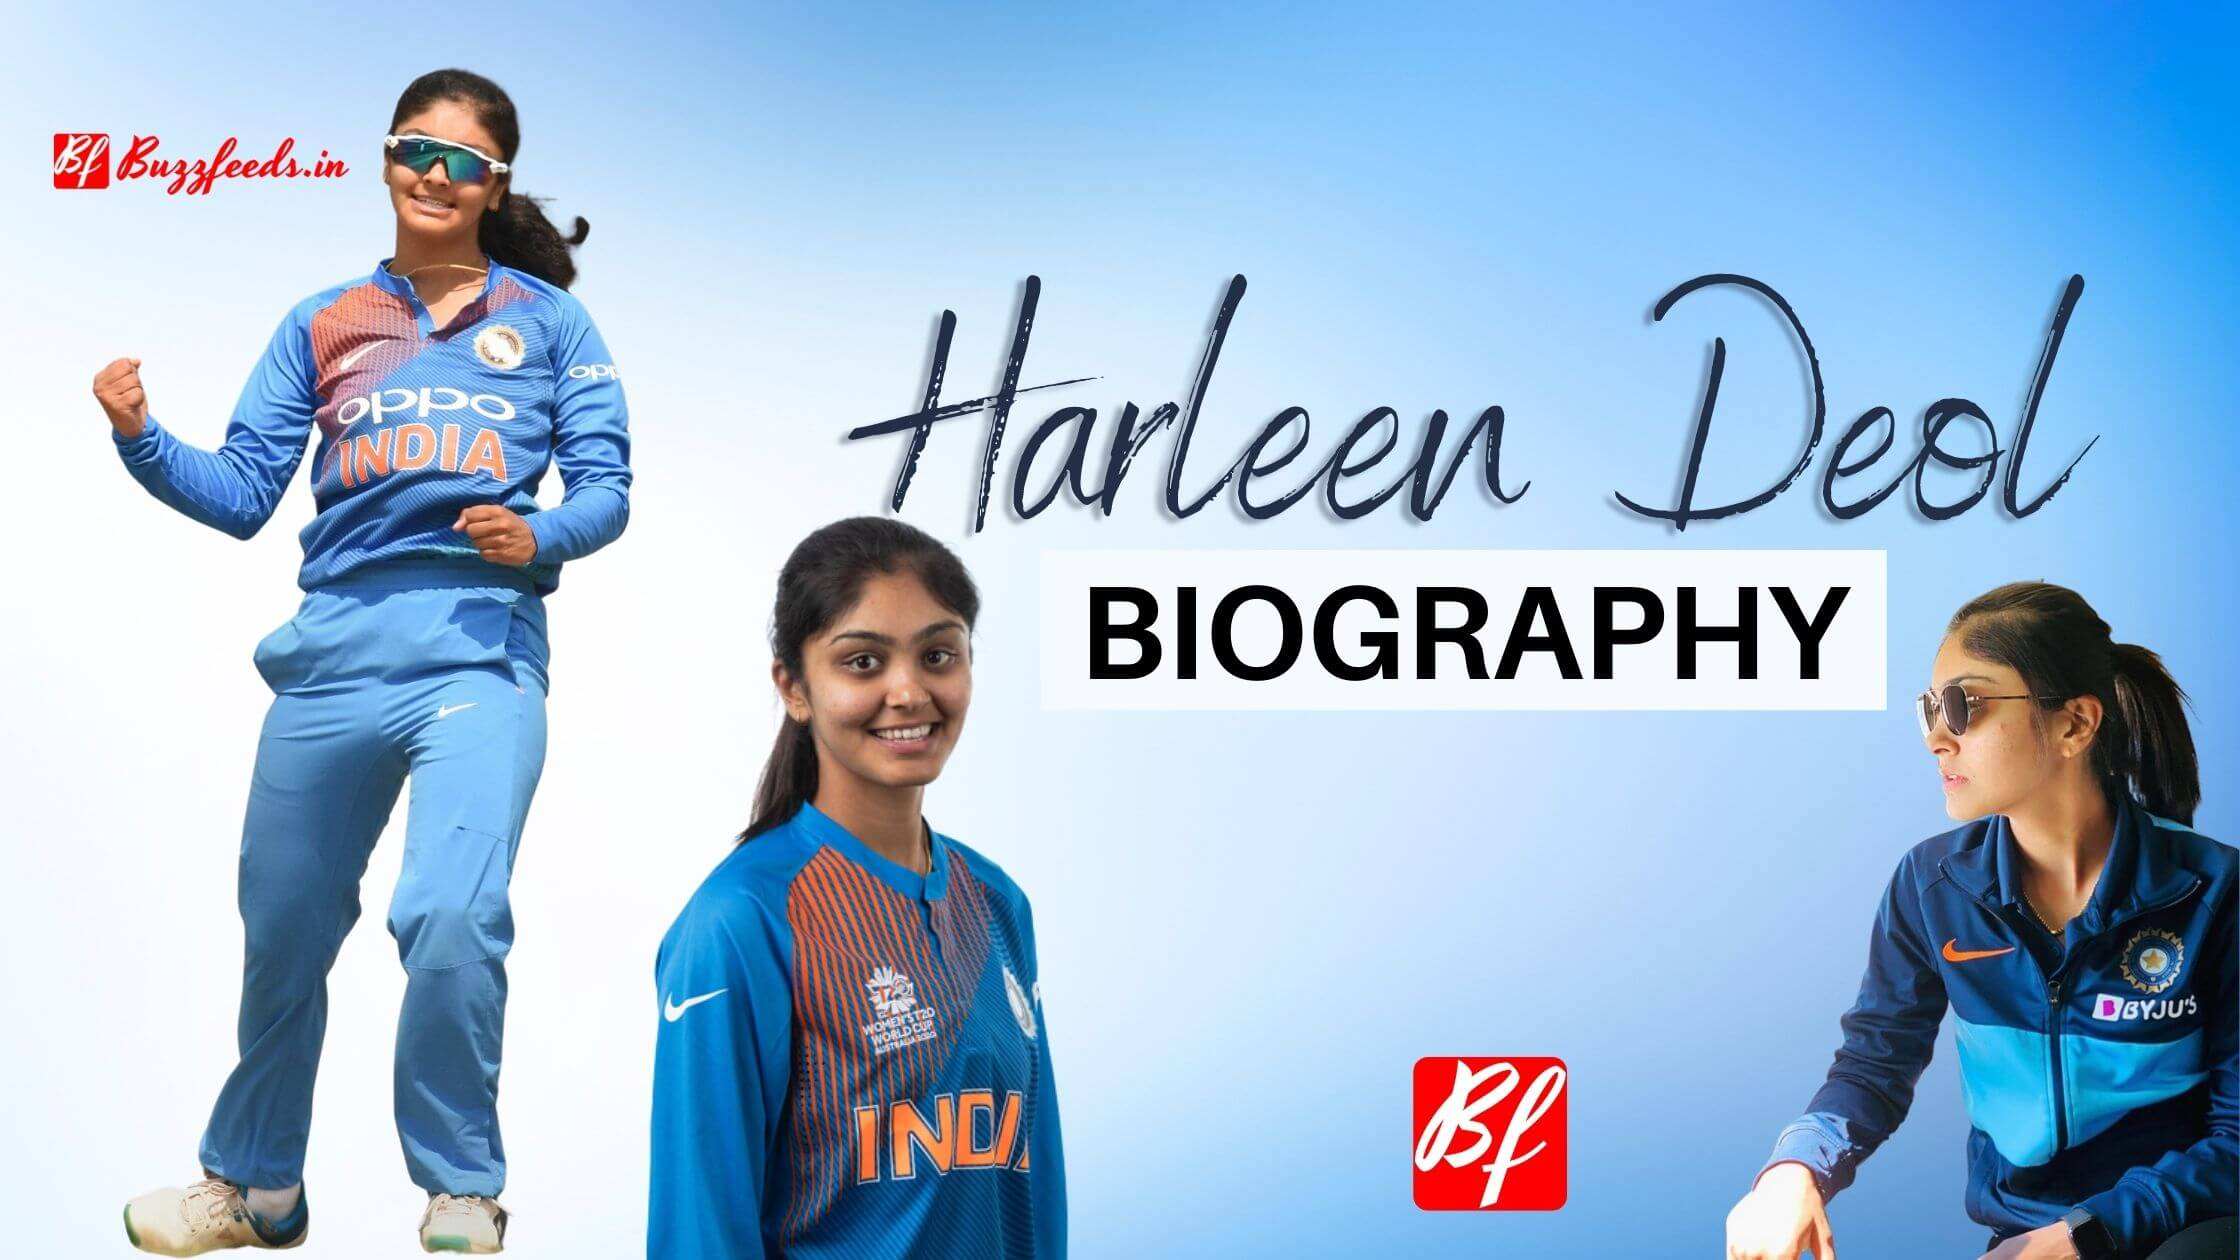 You are currently viewing Harleen Deol Biography, Stats, Age, Height and More Details